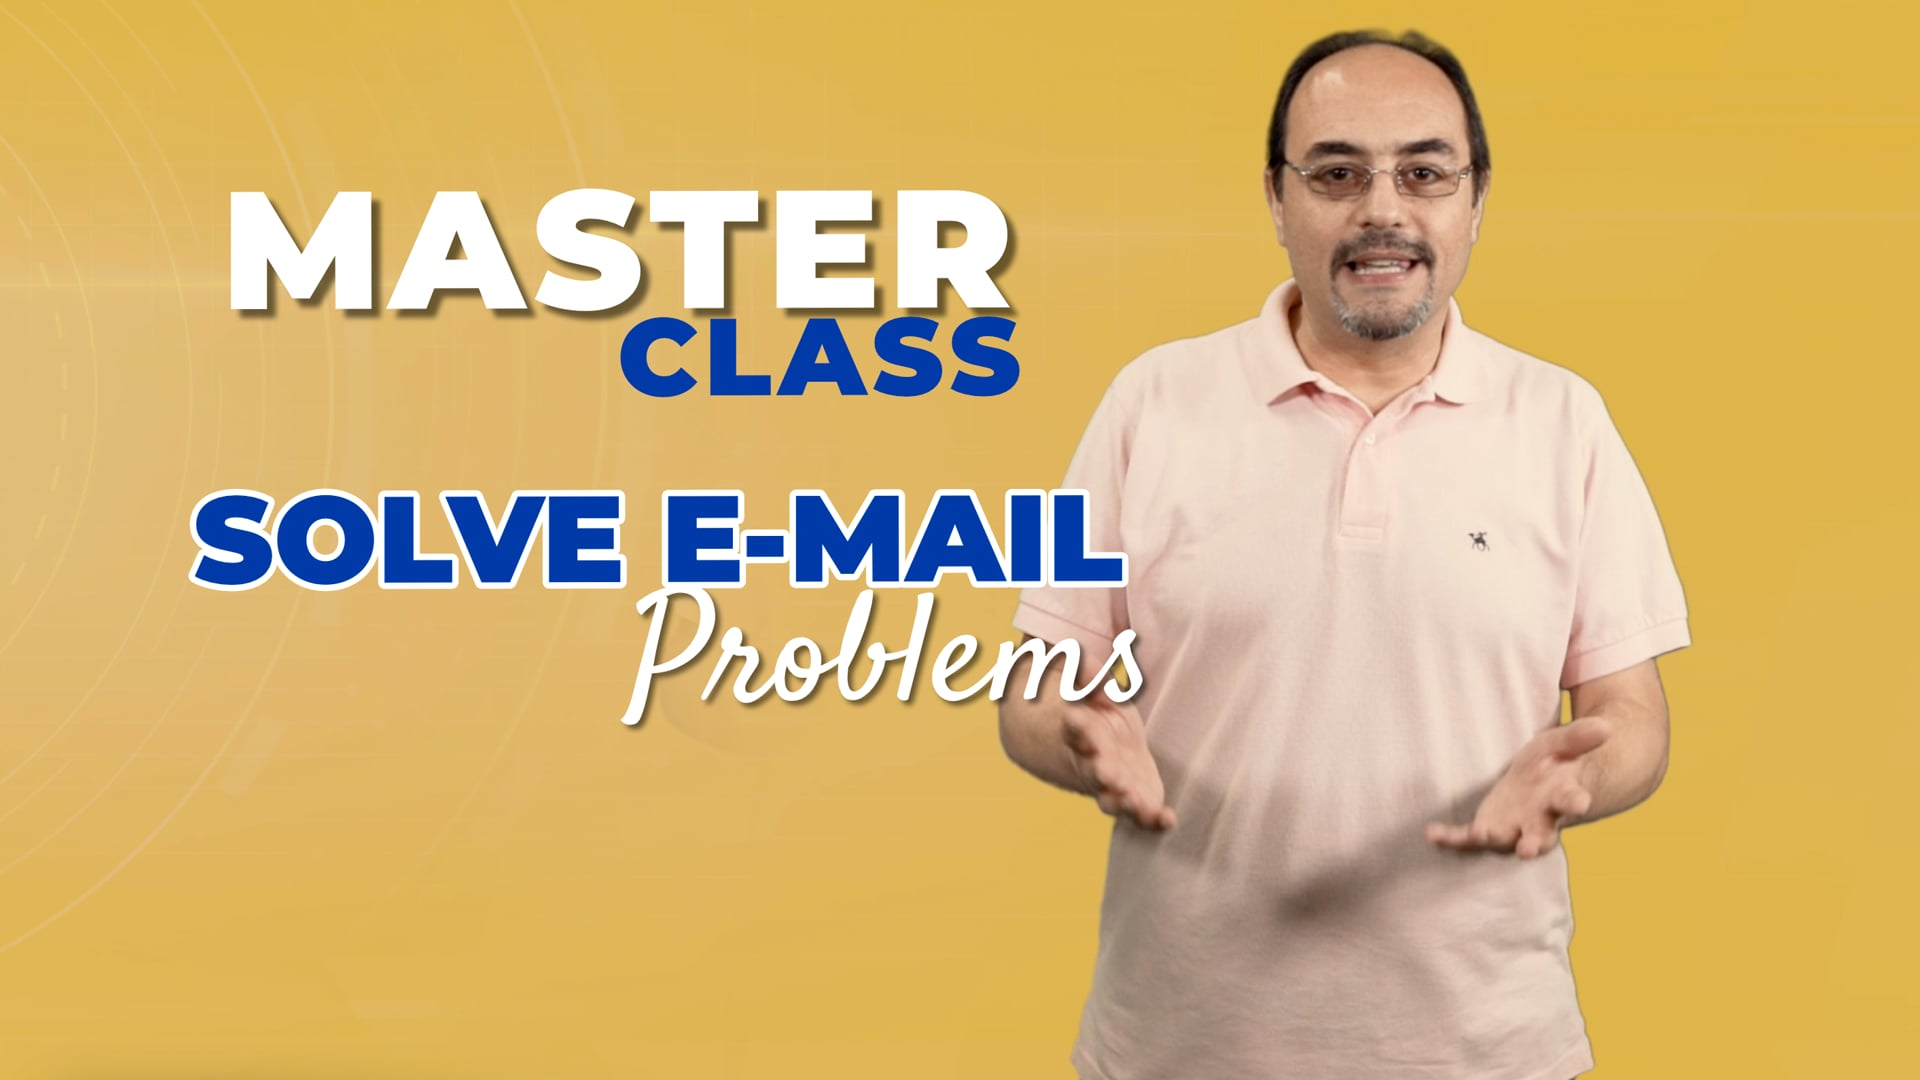 Solve E-Mail Problems Course - Amr Selim